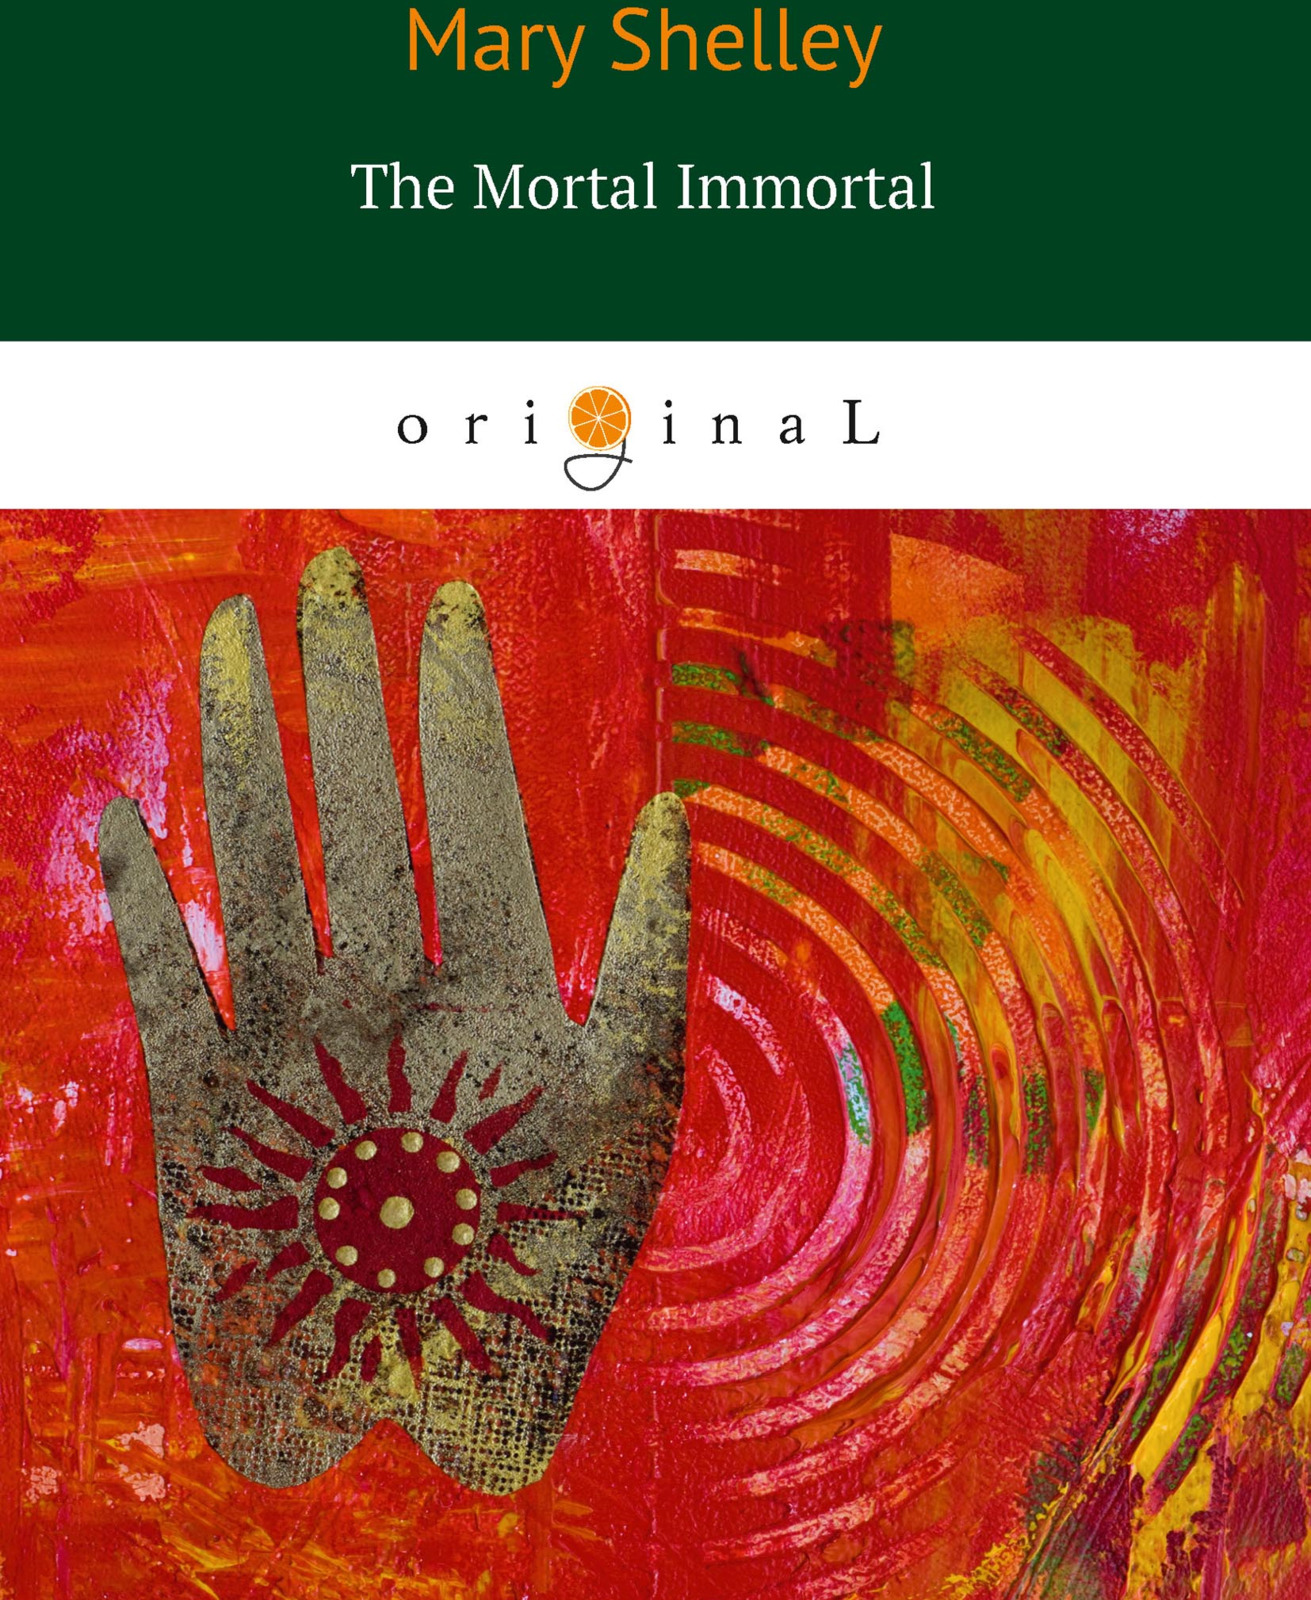 Mary Shelley The Mortal Immortal m shelley the mortal immortal